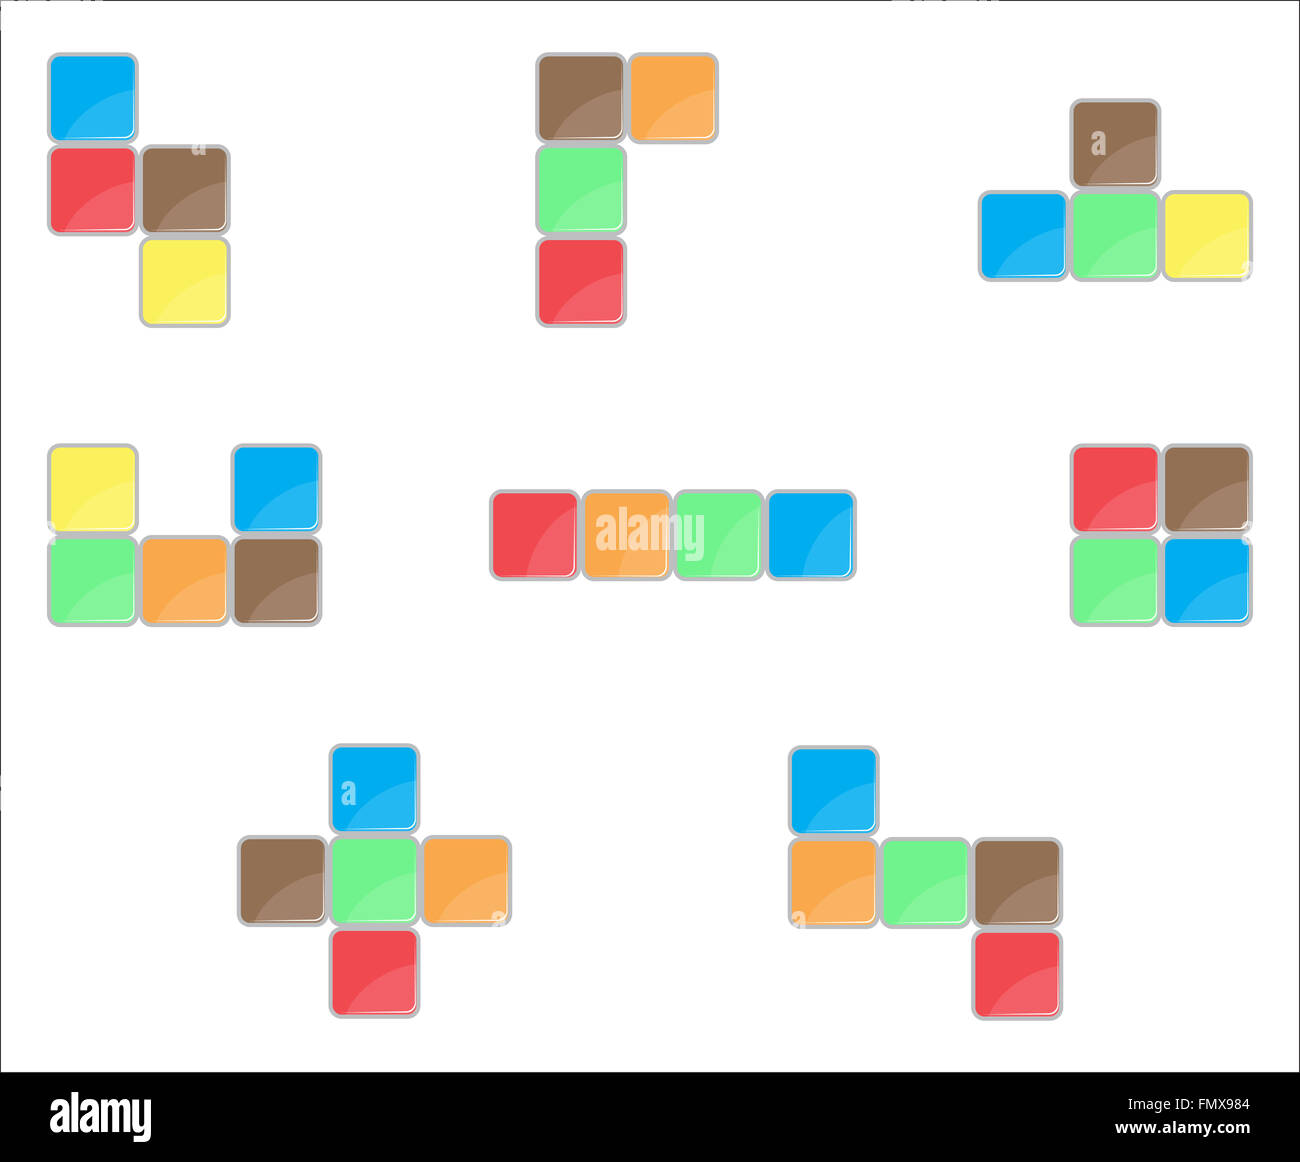 Tetris element set color design puzzle tetris game blocks computer puzzle tetris game blocks computer game video game element leisure game color shape block ccuart Choice Image